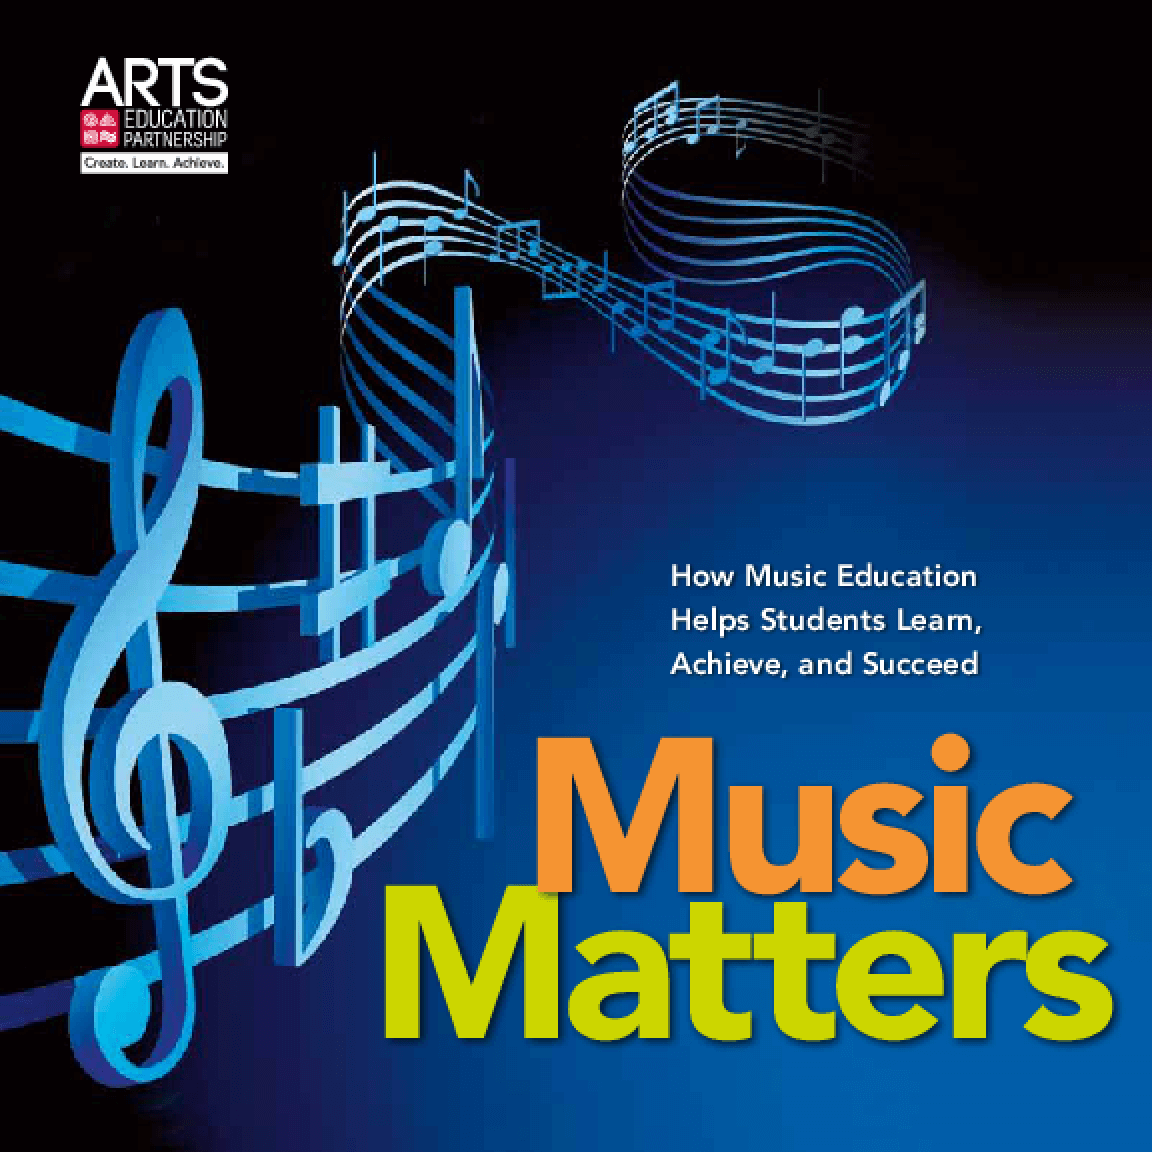 Music Matters: How Music Education Helps Students Learn, Achieve, and Succeed